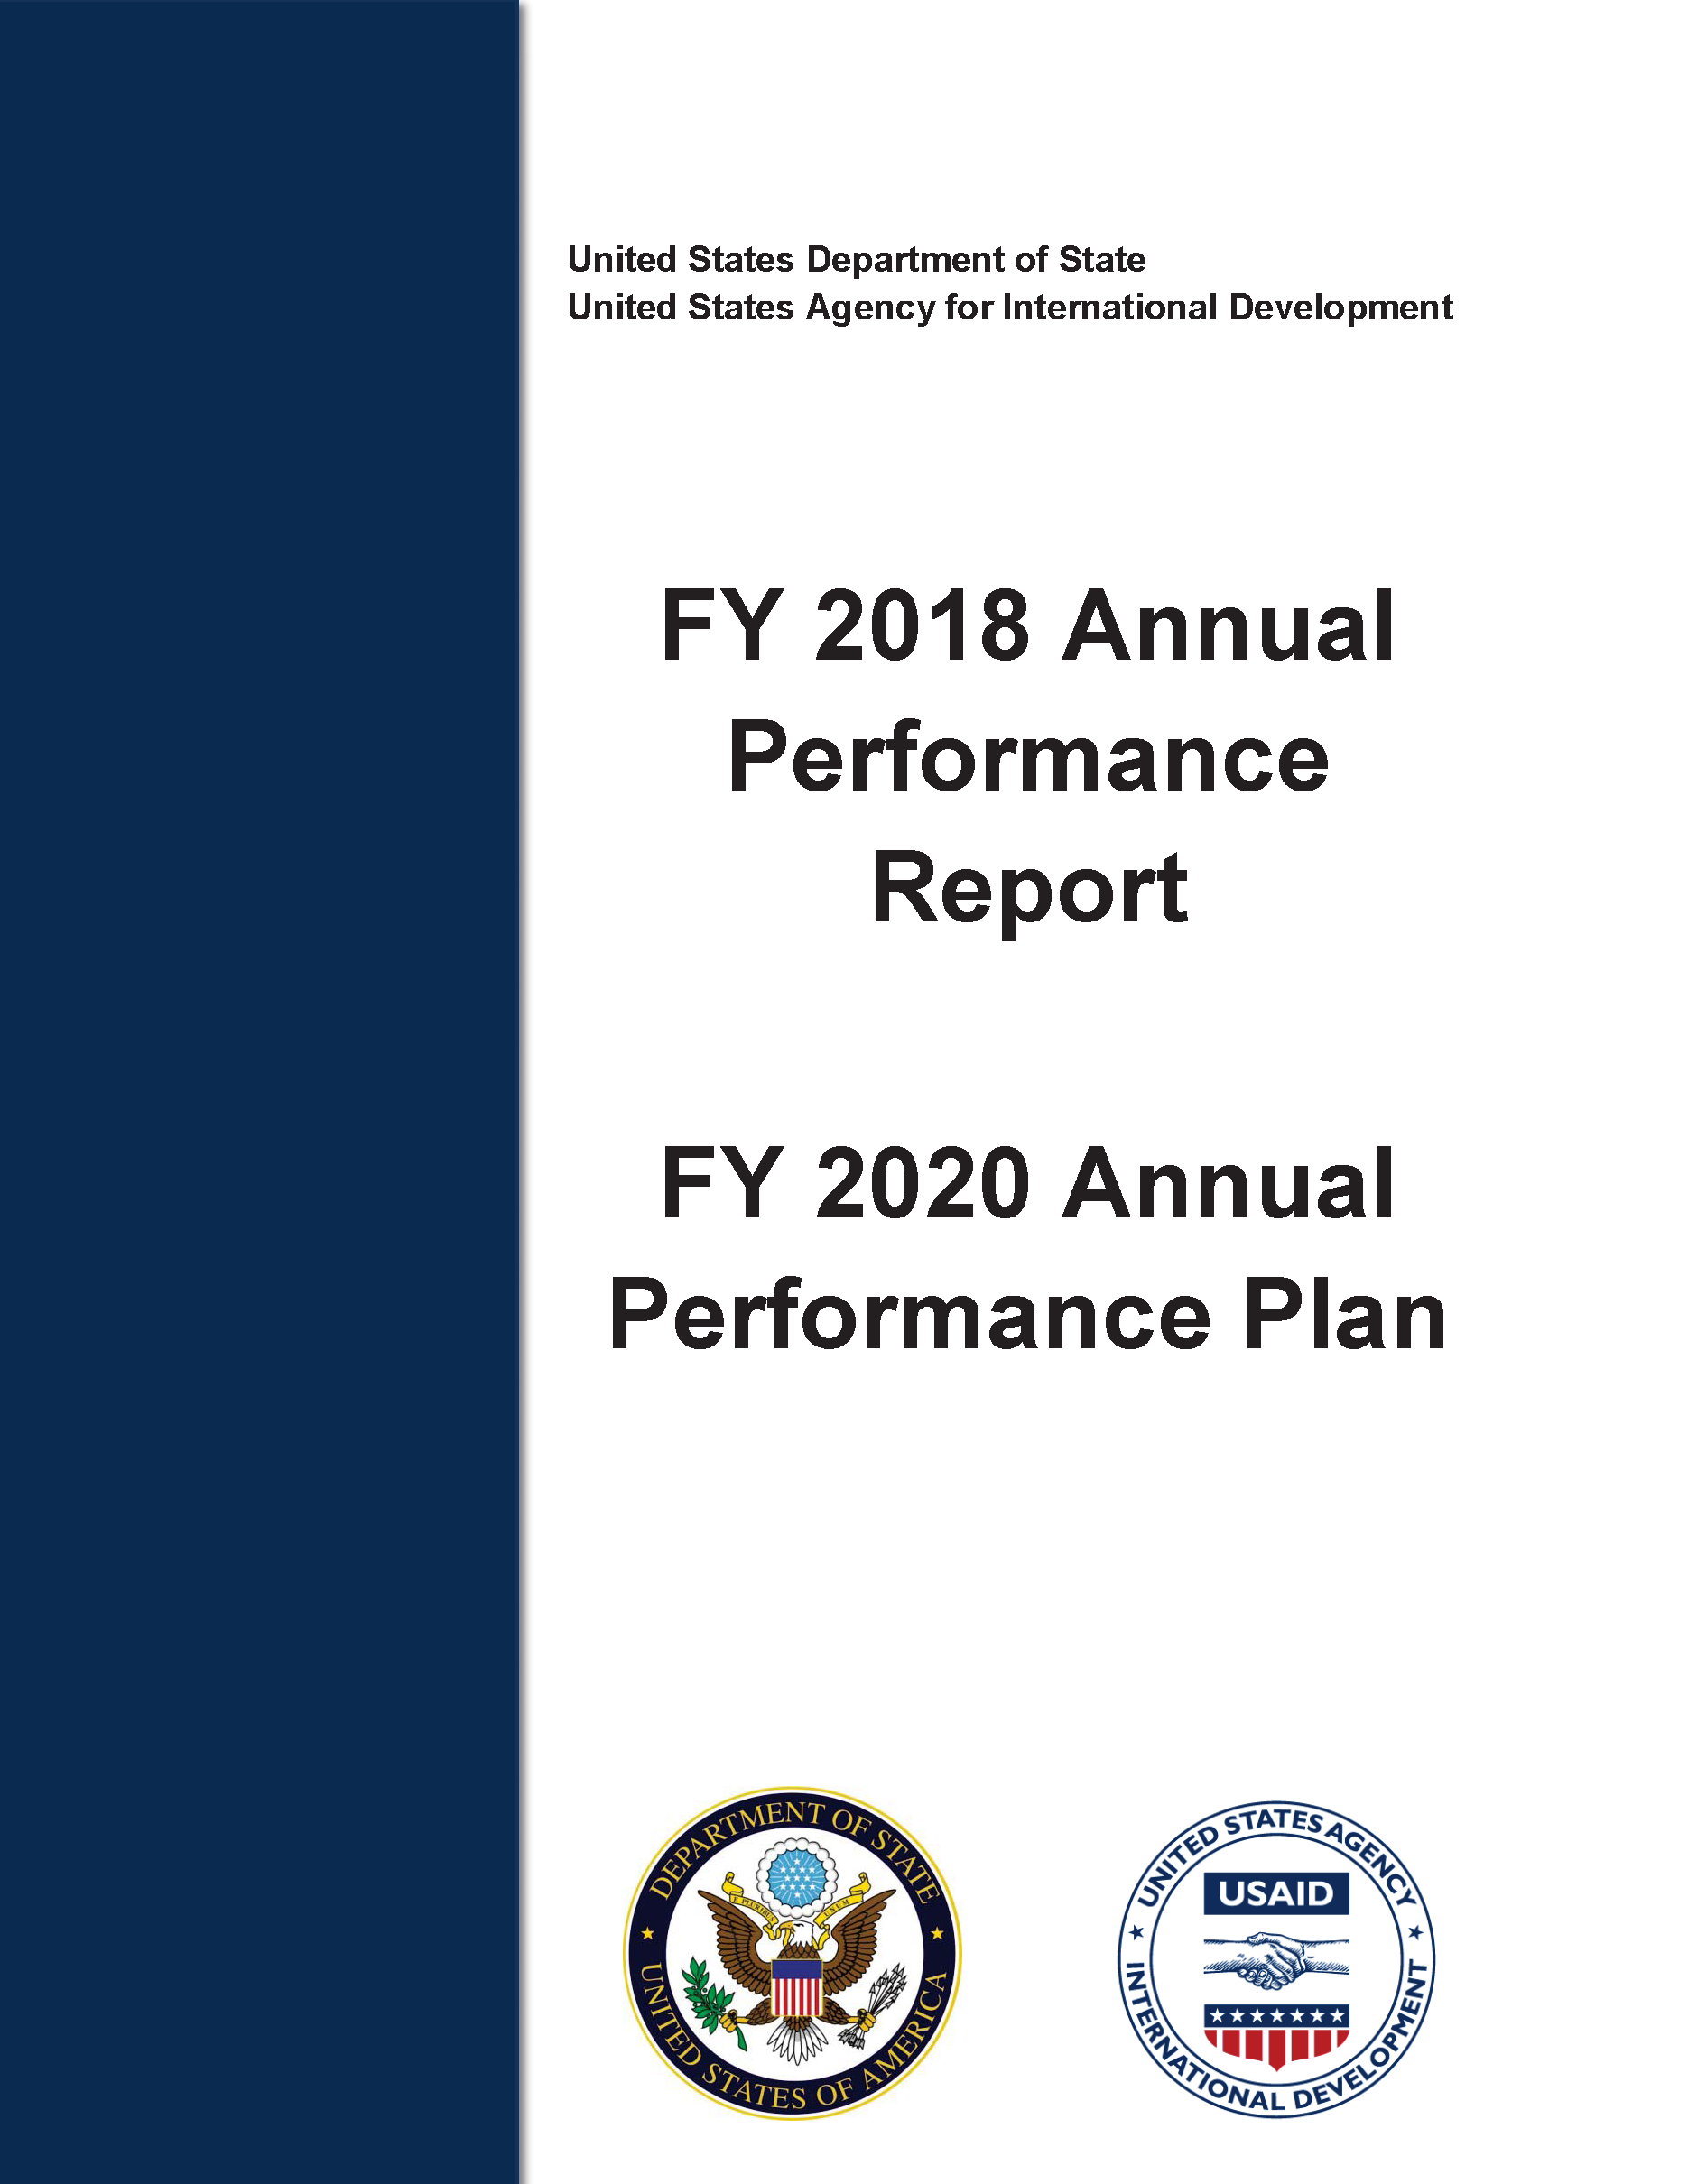 FY 2018 Annual Performance Report